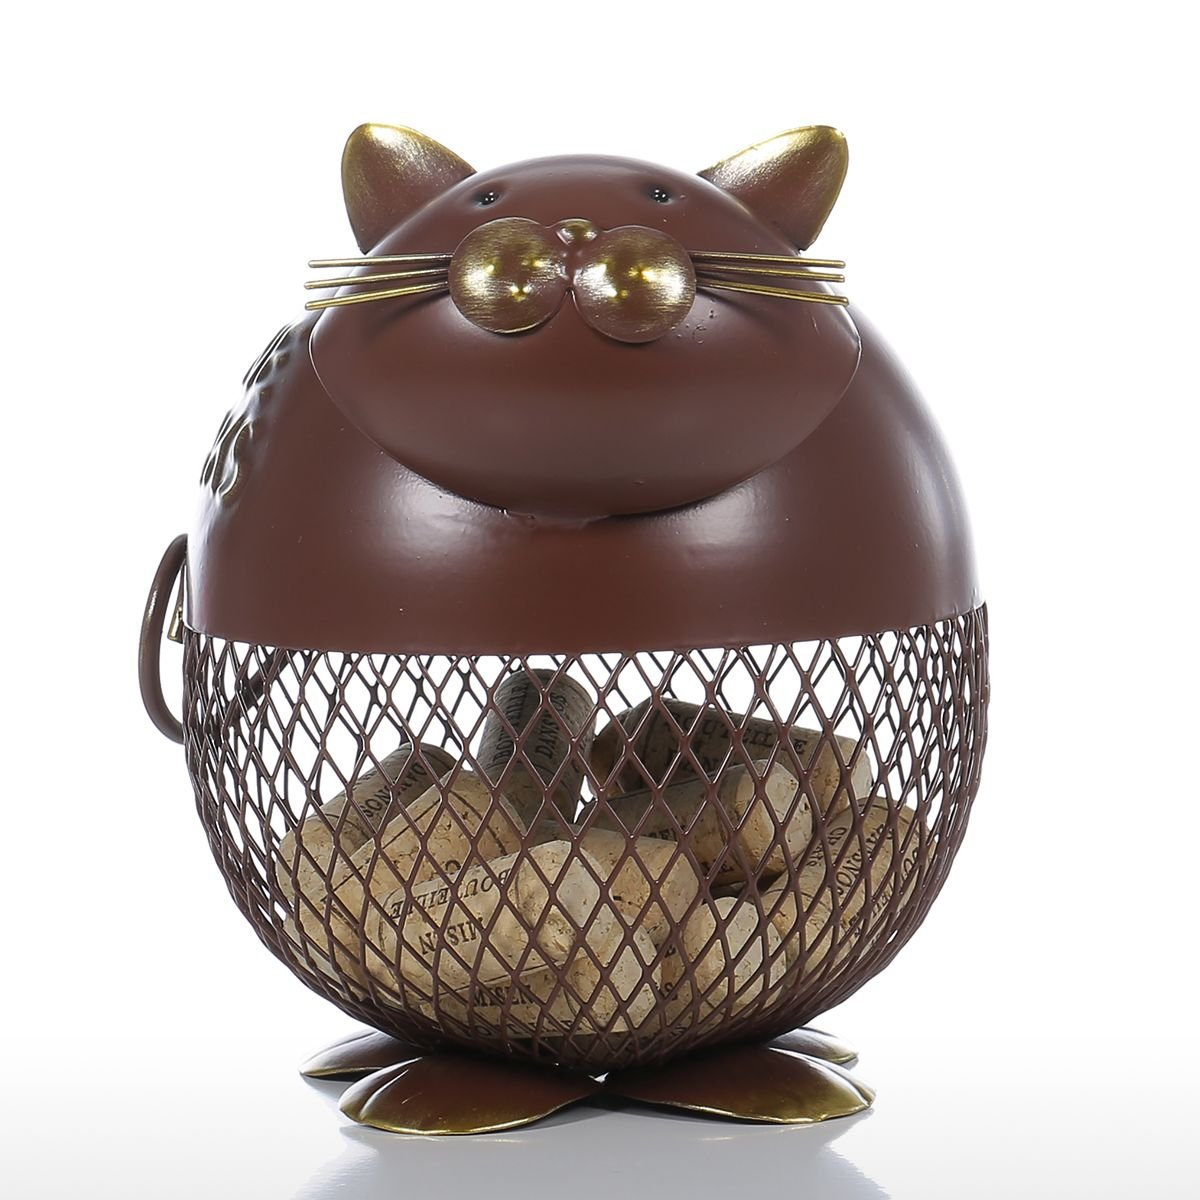 Tooarts Wine Barrel Cork Cage Container Puffy Cat Home Decor Metal Sculpture Animal Craft Gift